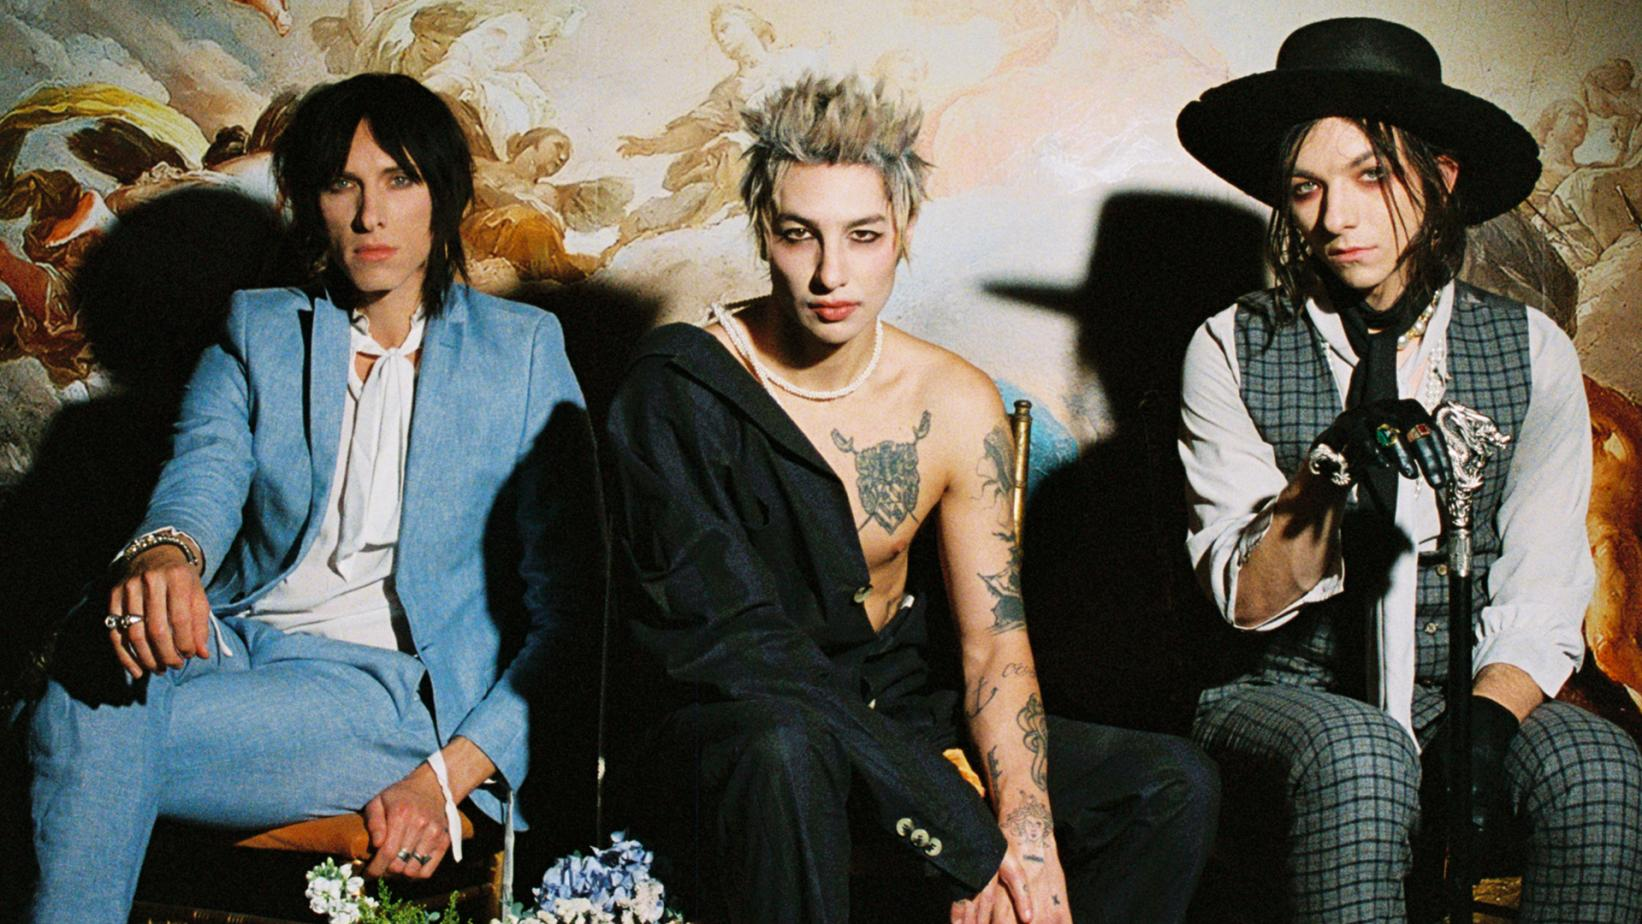 The three brothers of Palaye Royale pose together, seated